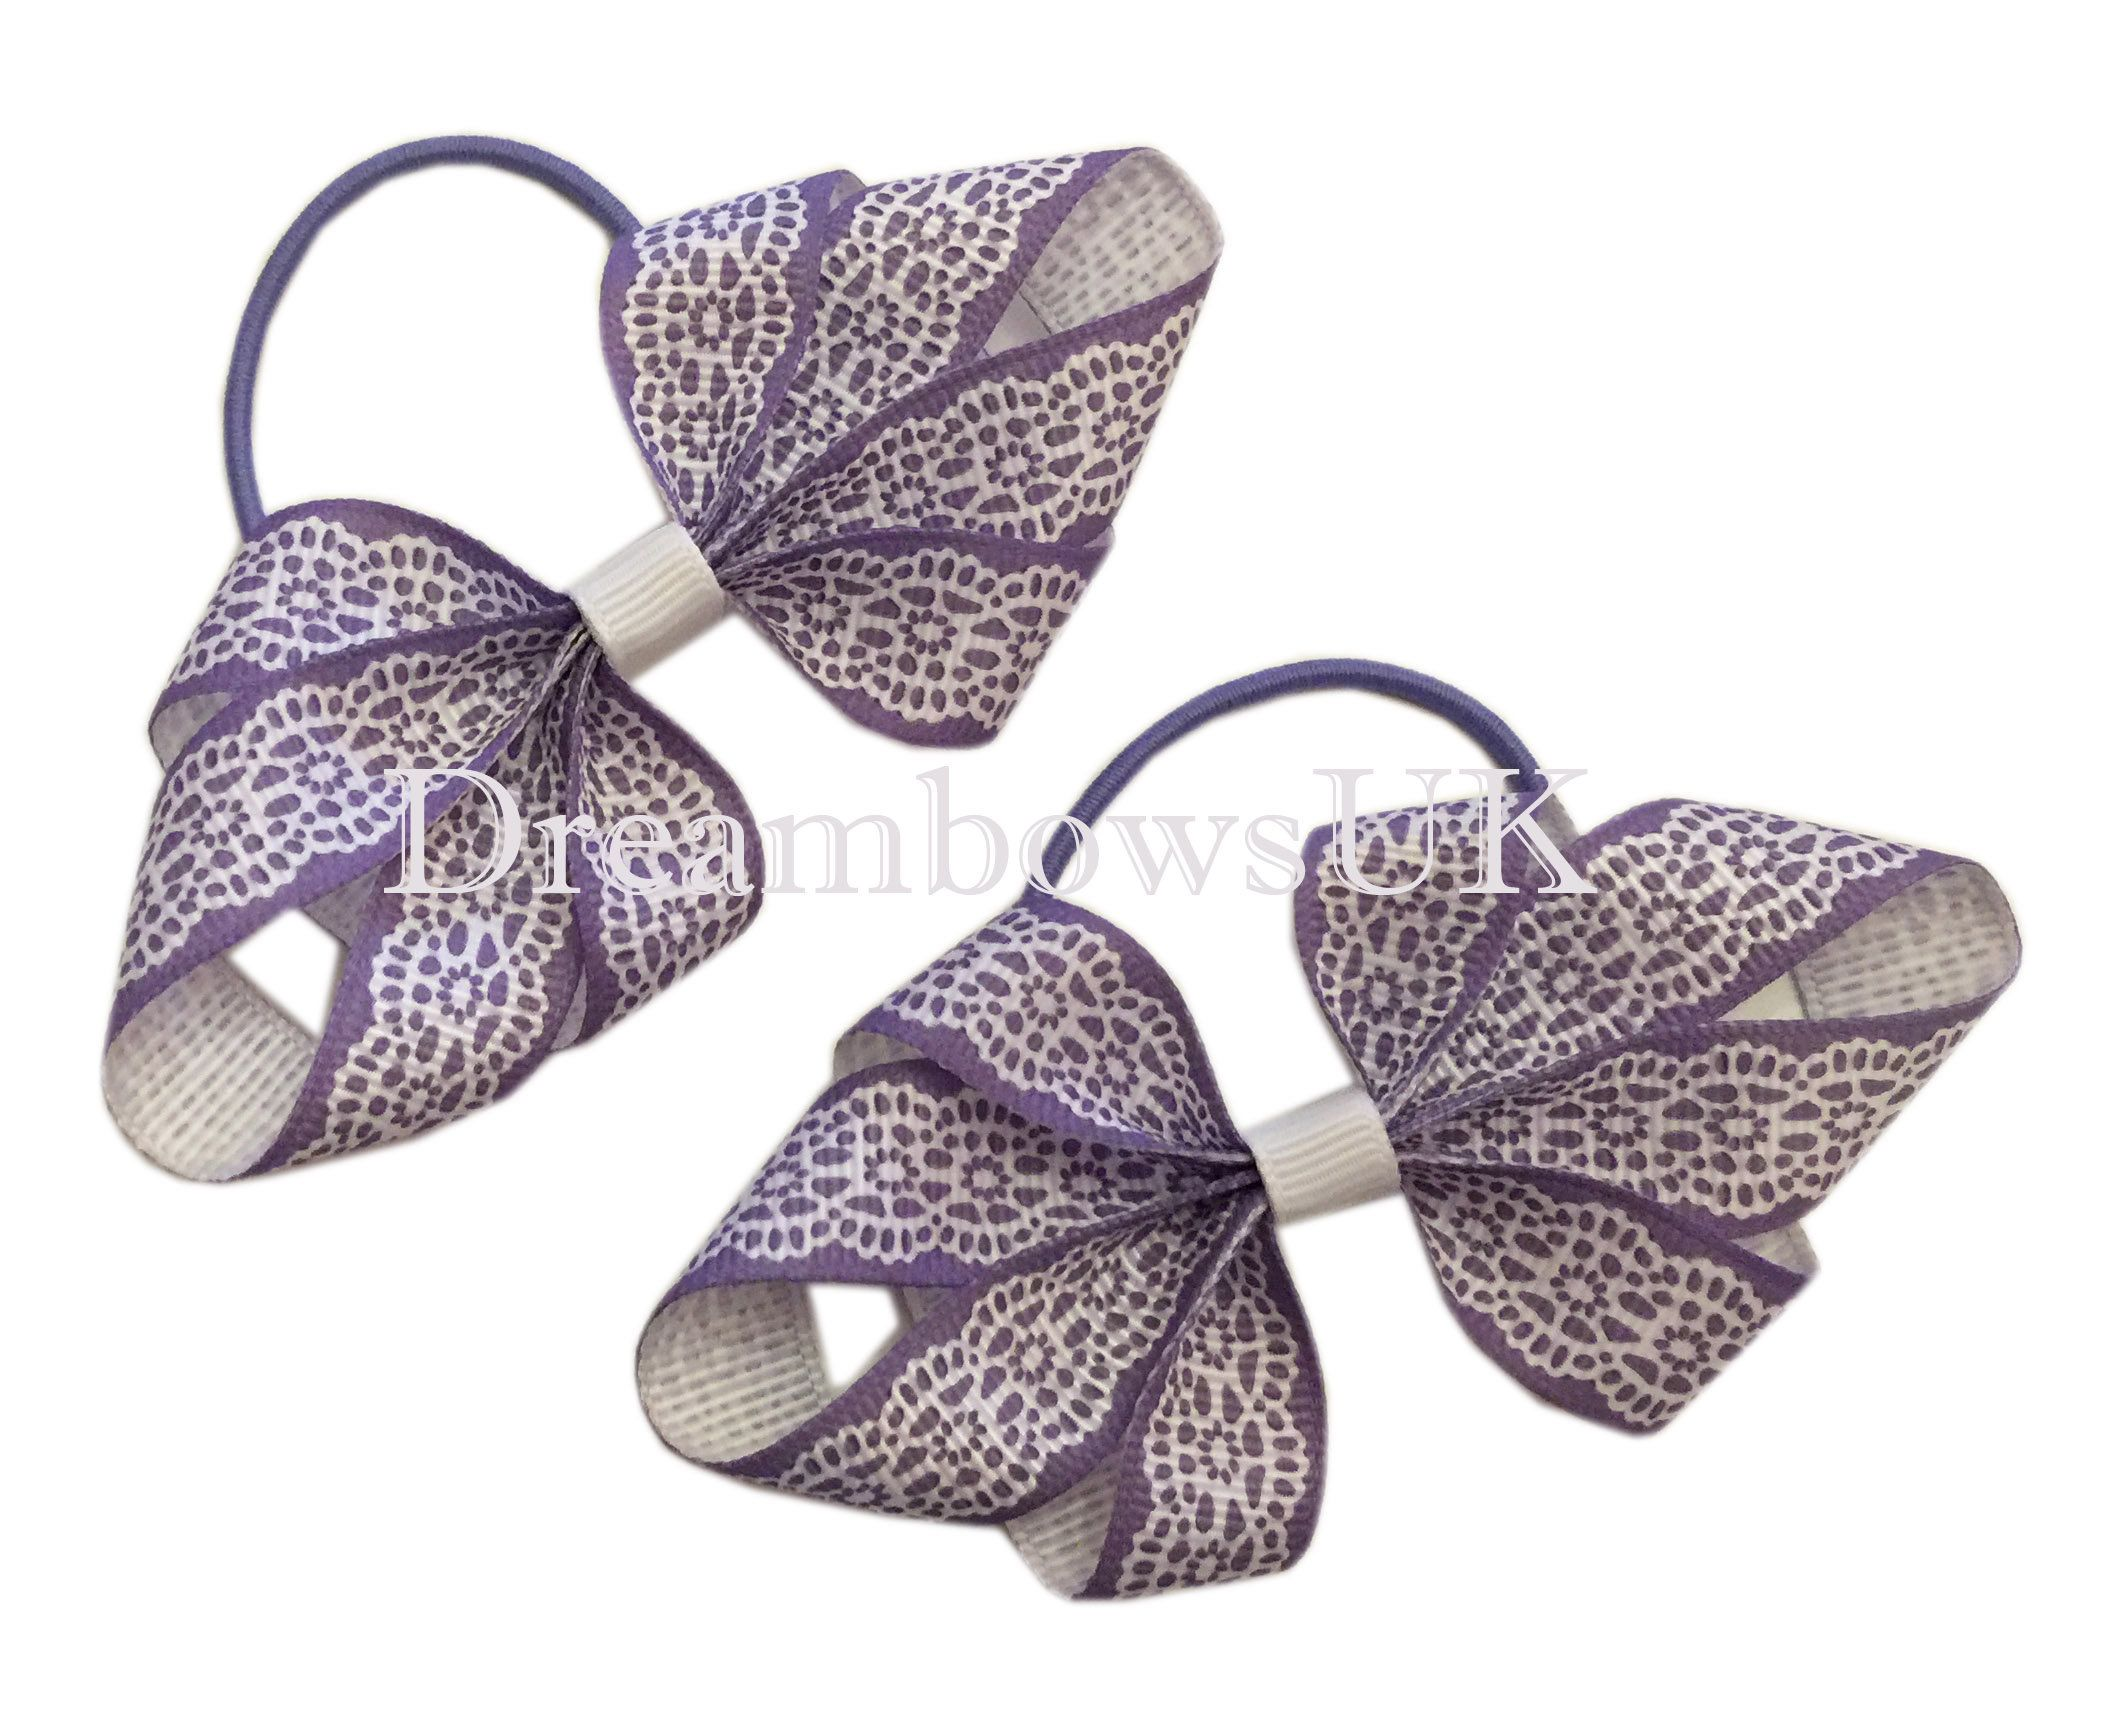 Lilac and white novelty hair bows 151113dd251